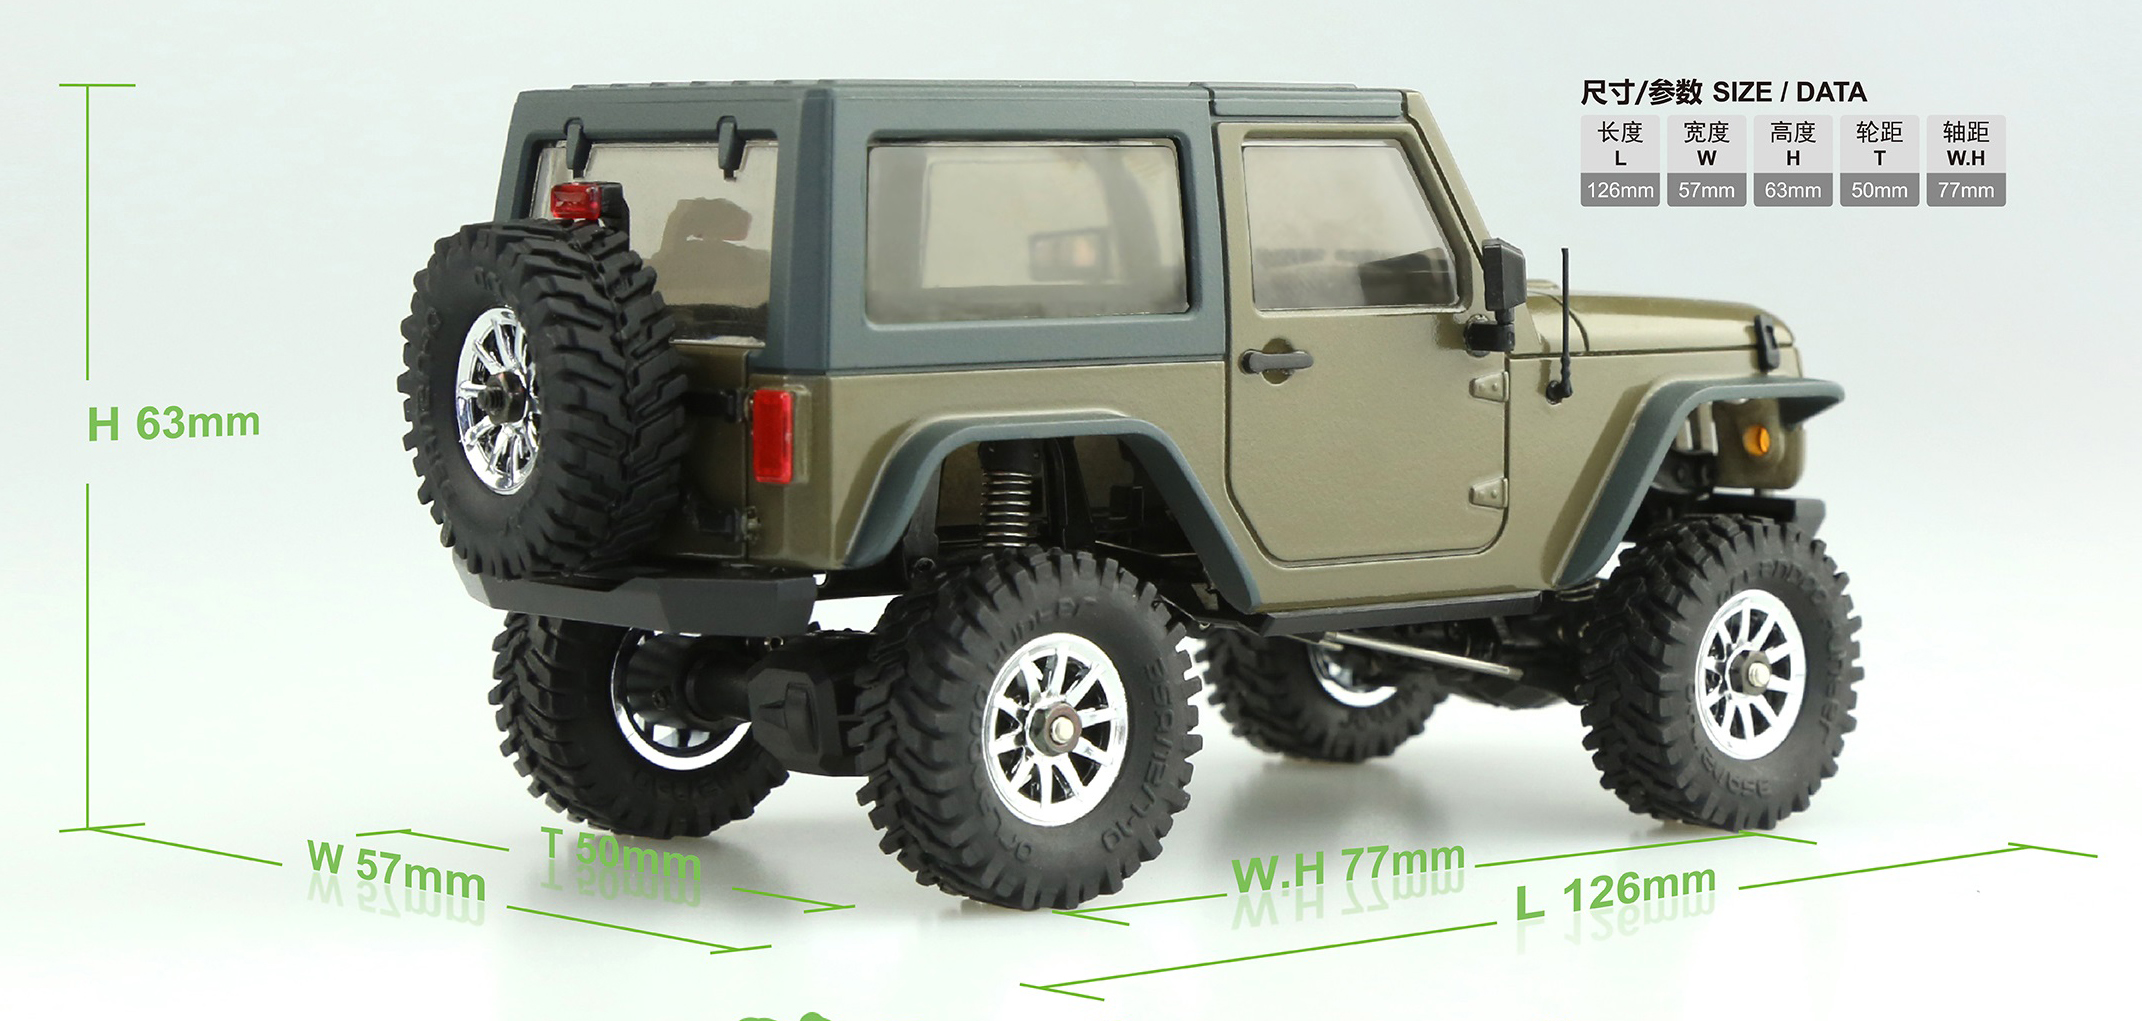 4WD Off-Road Jeep Small Scale Rock Climbing Remote Control Car, Orlandoo-Hunter OH35A01 Kit.